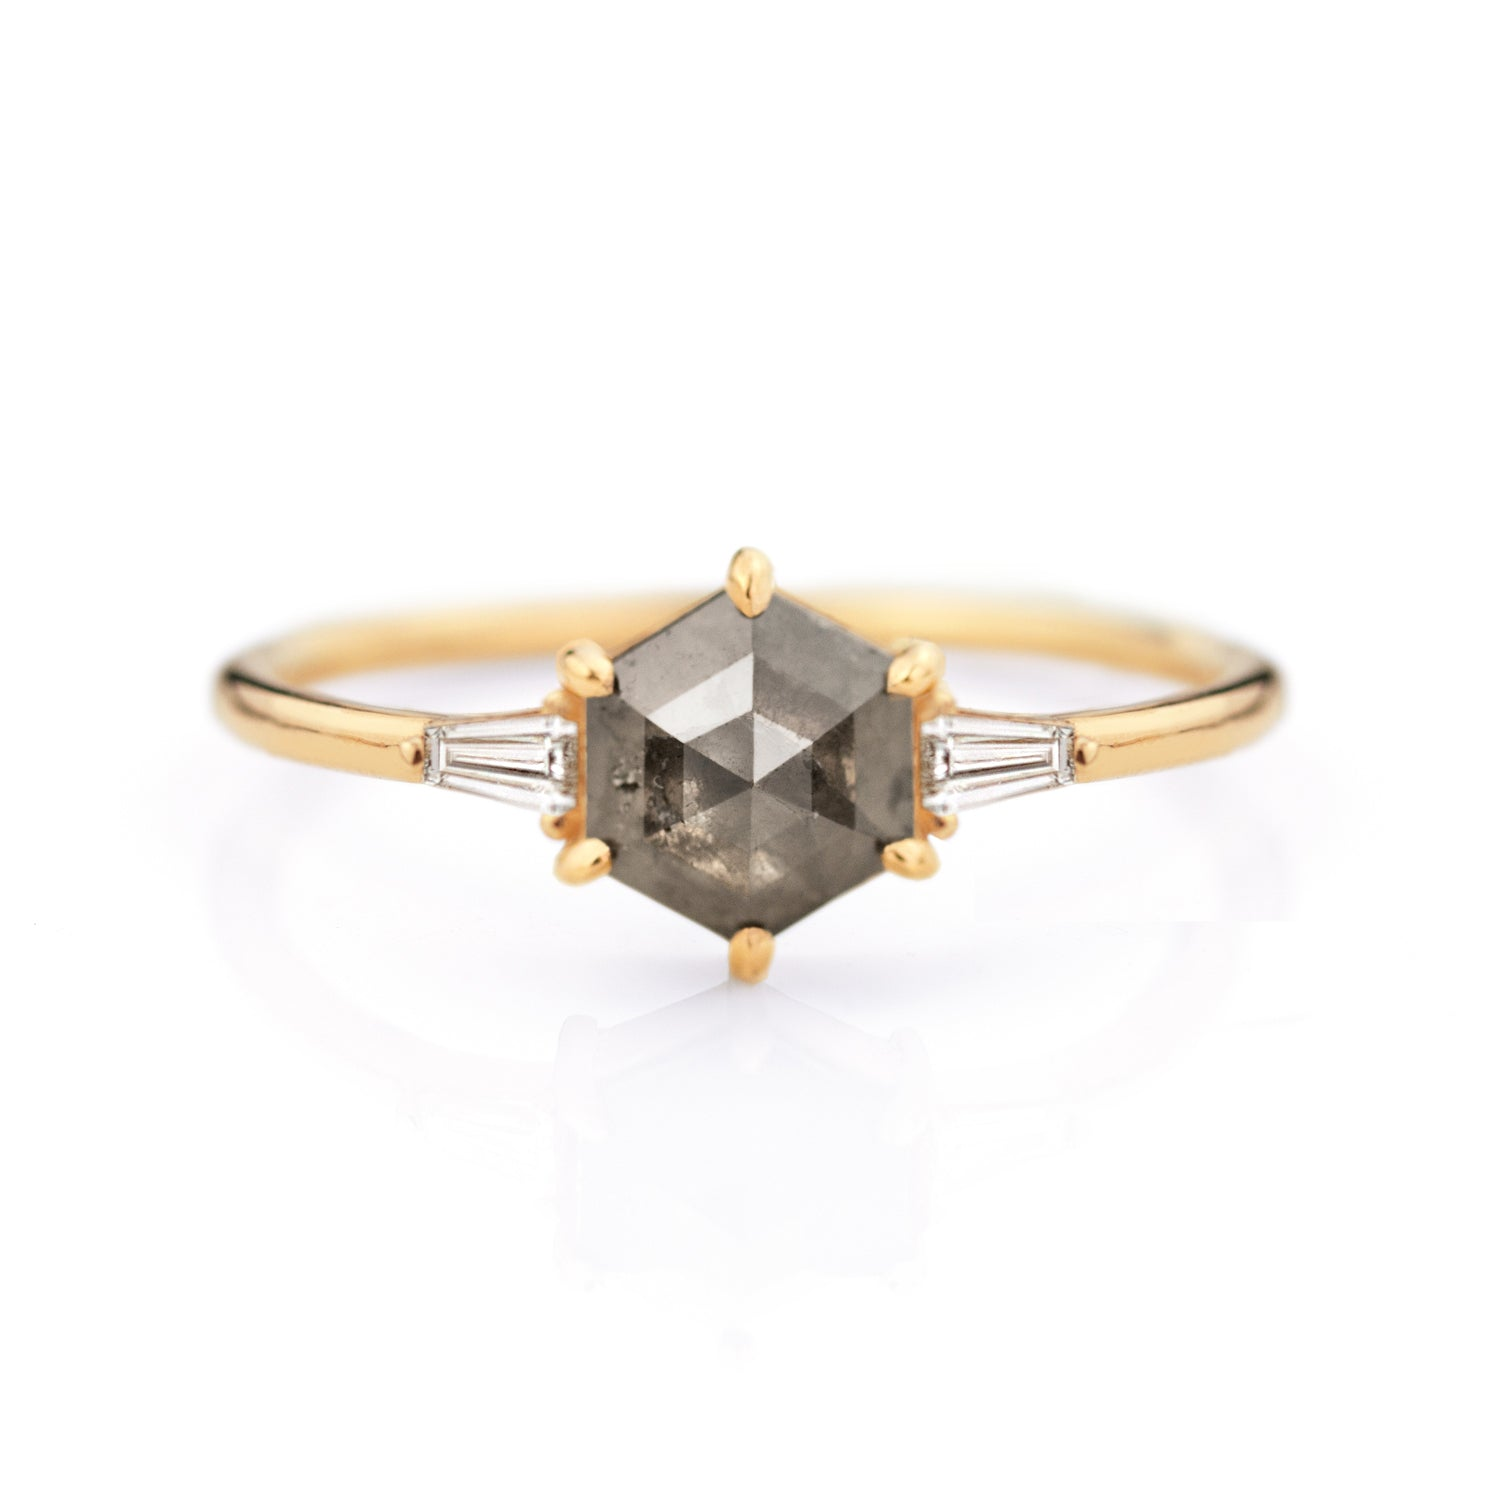 Hexagon Rose Cut Diamond Ring